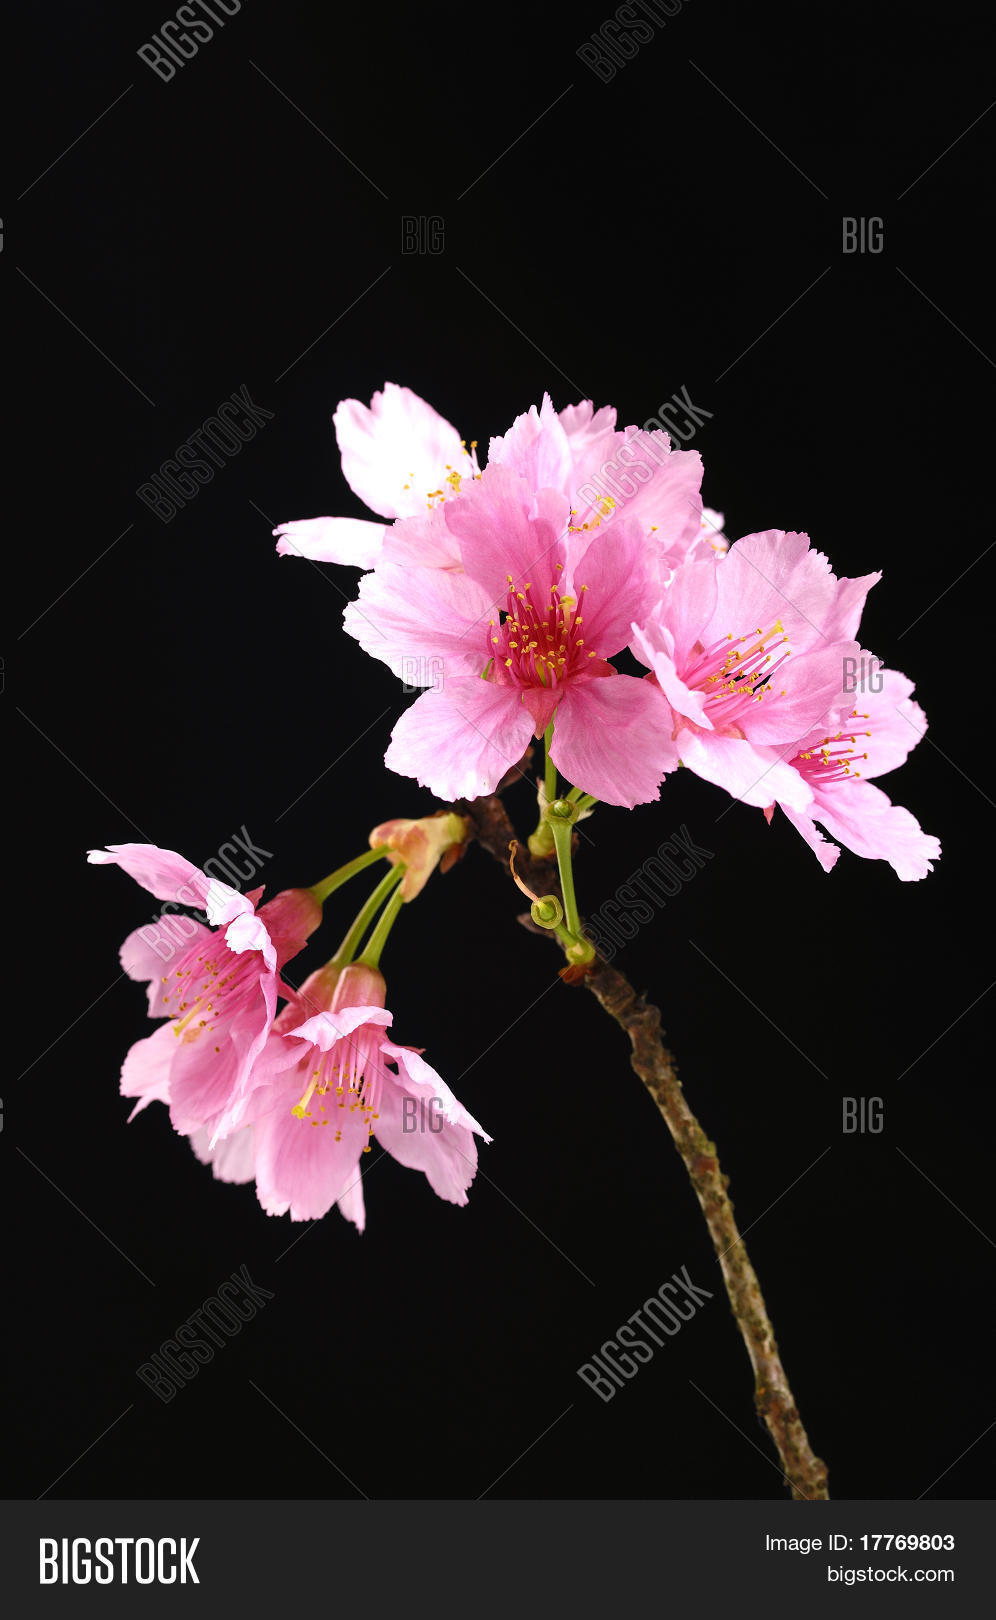 Beautiful flowers image photo free trial bigstock beautiful flowers blooming cherry on a black background izmirmasajfo